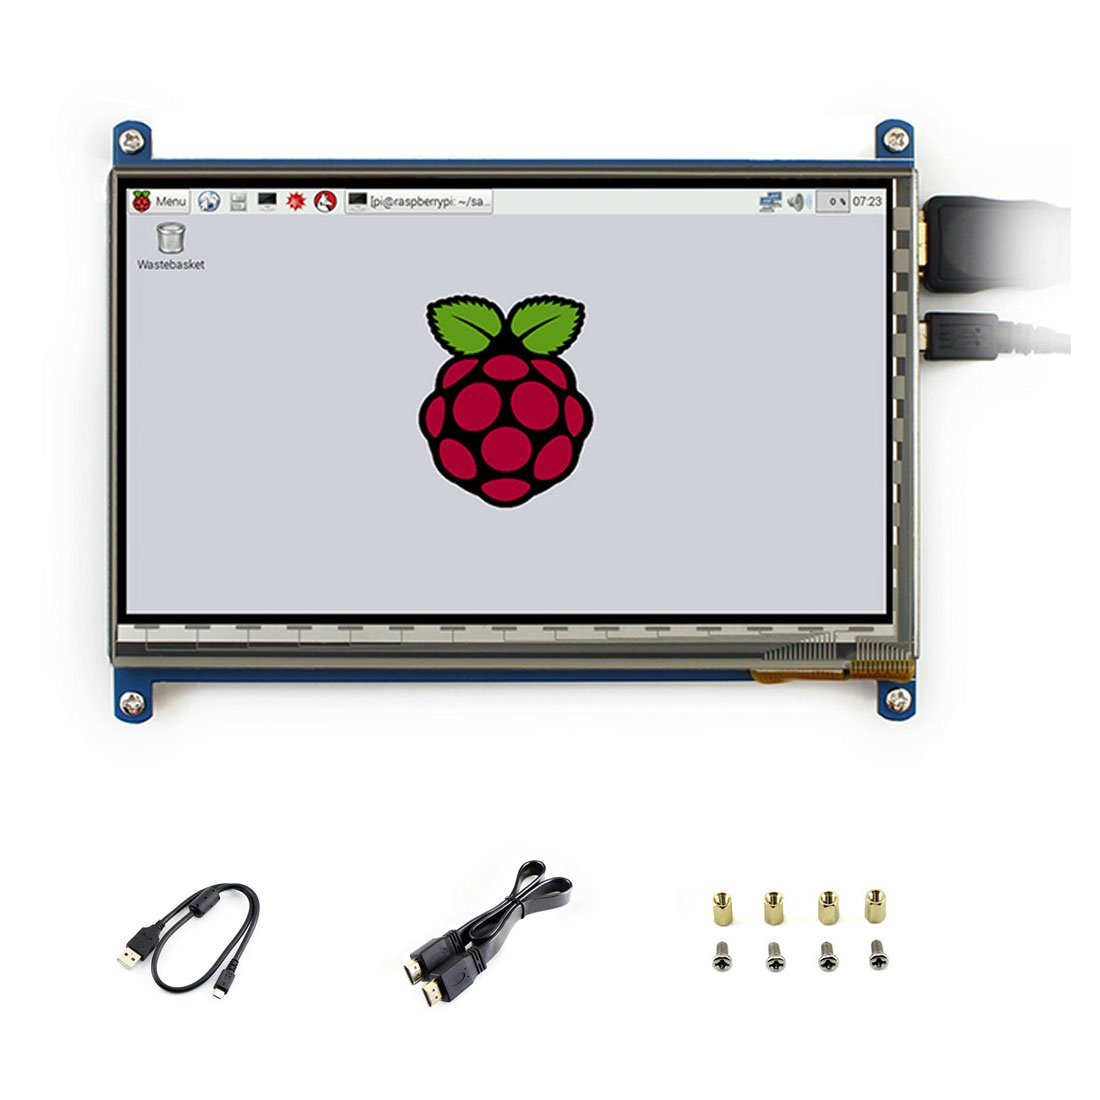 5 inch LCD B Rev2.1 Touch Resistive Screen Windows 10 HDMI interface 800*480 Supports Various Systems For Raspberry pi3/3B+/2 B/B+/A Waveshare